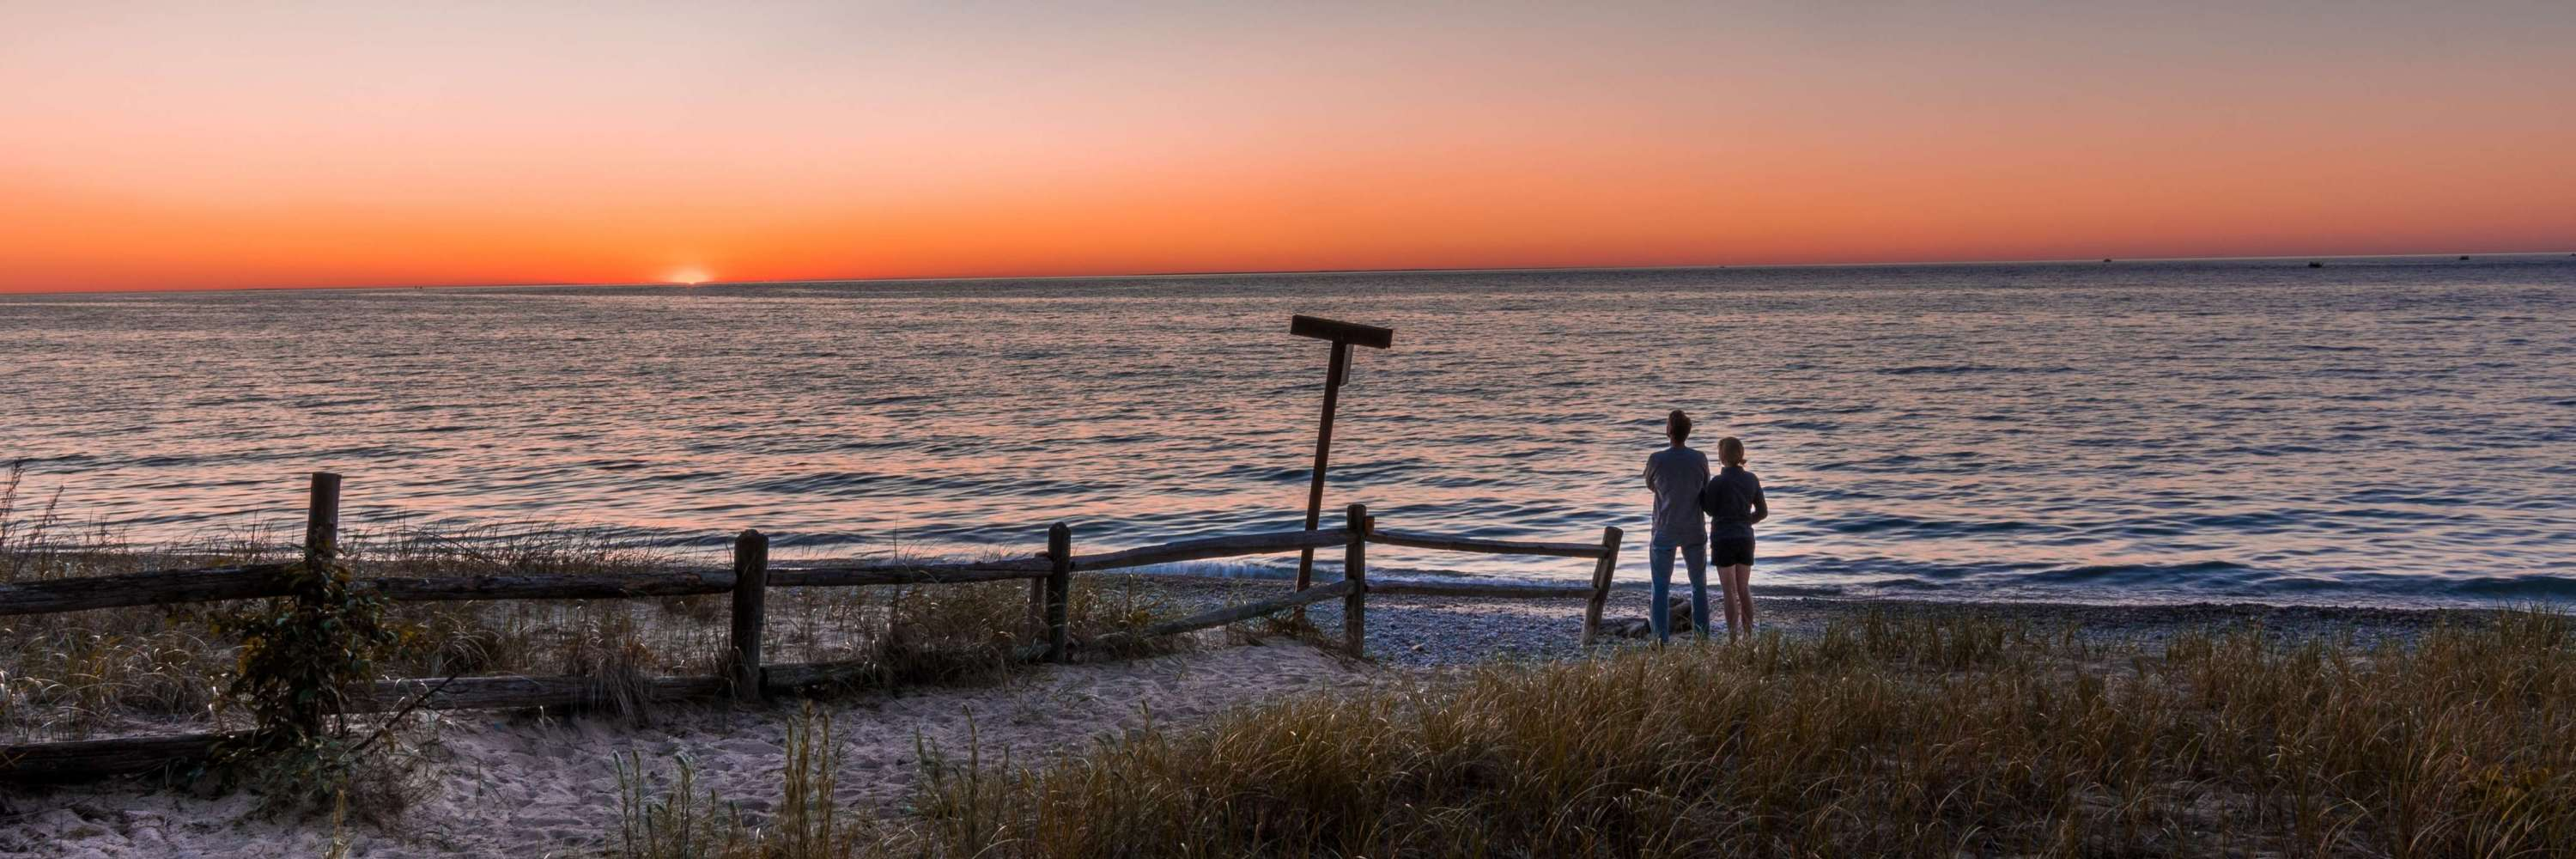 Couple watching the sunset over a Great Lake in Michigan